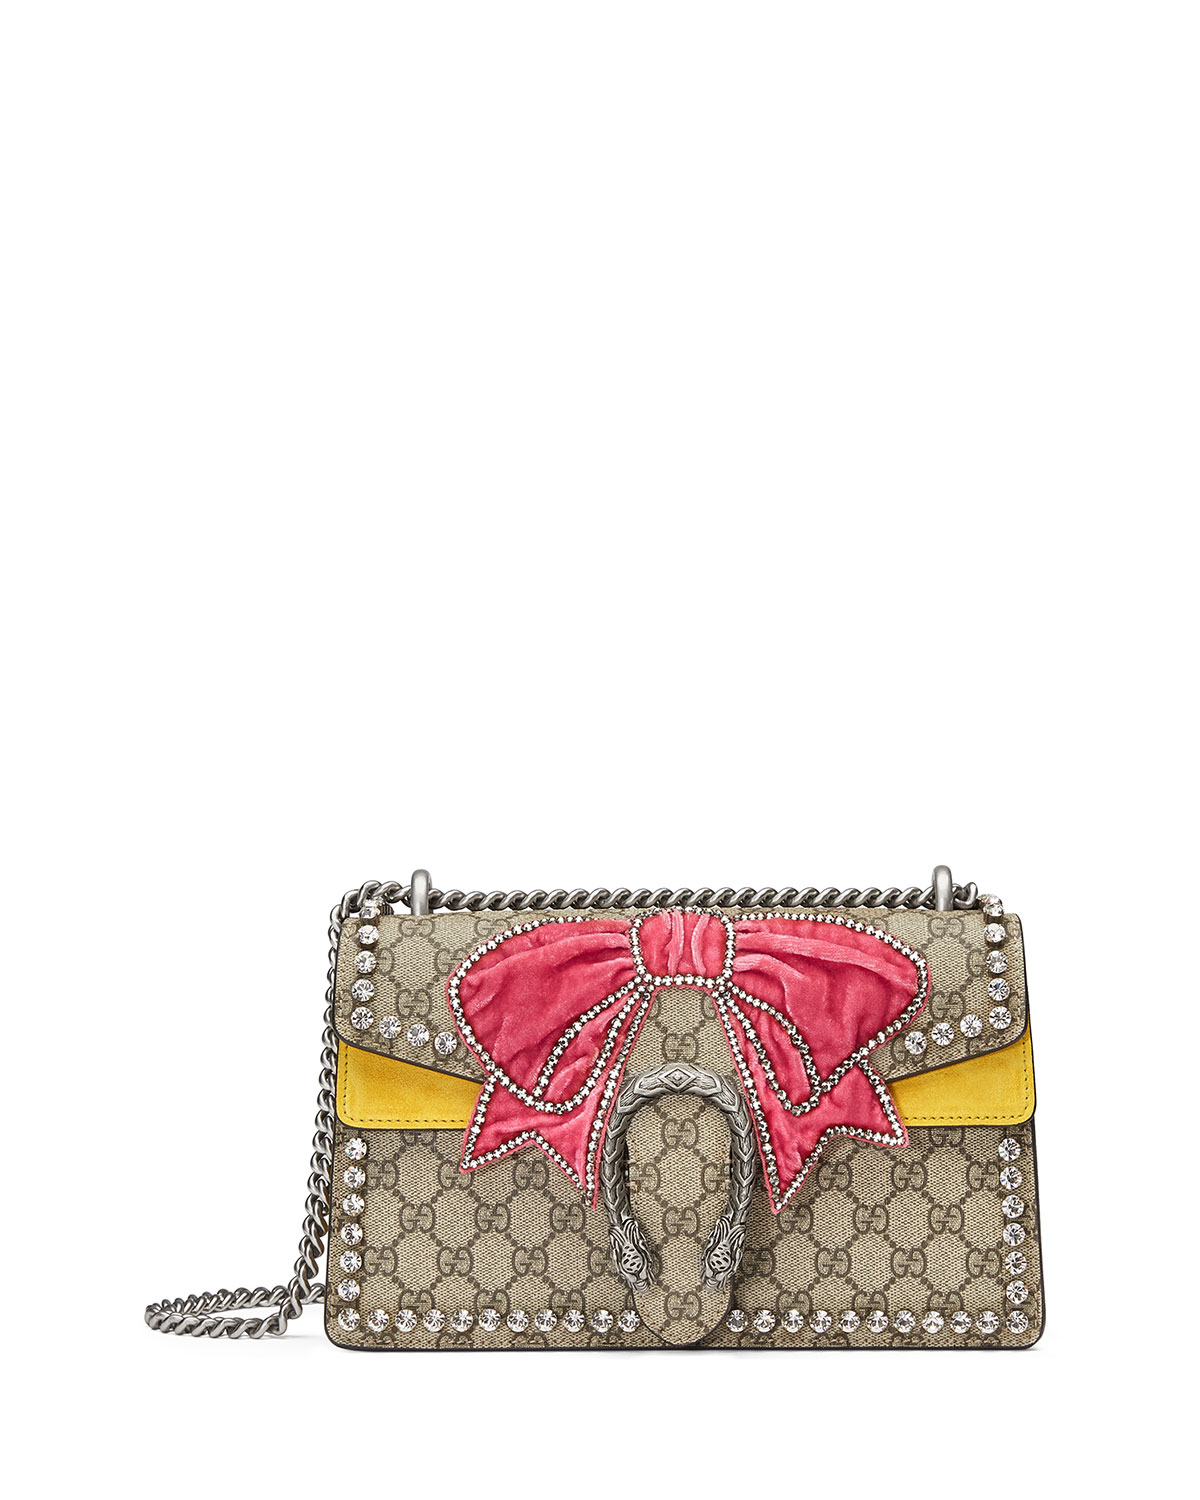 8bc34e812d4a59 Gucci Dionysus Small GG Supreme Shoulder Bag with Bow & Crystals ...